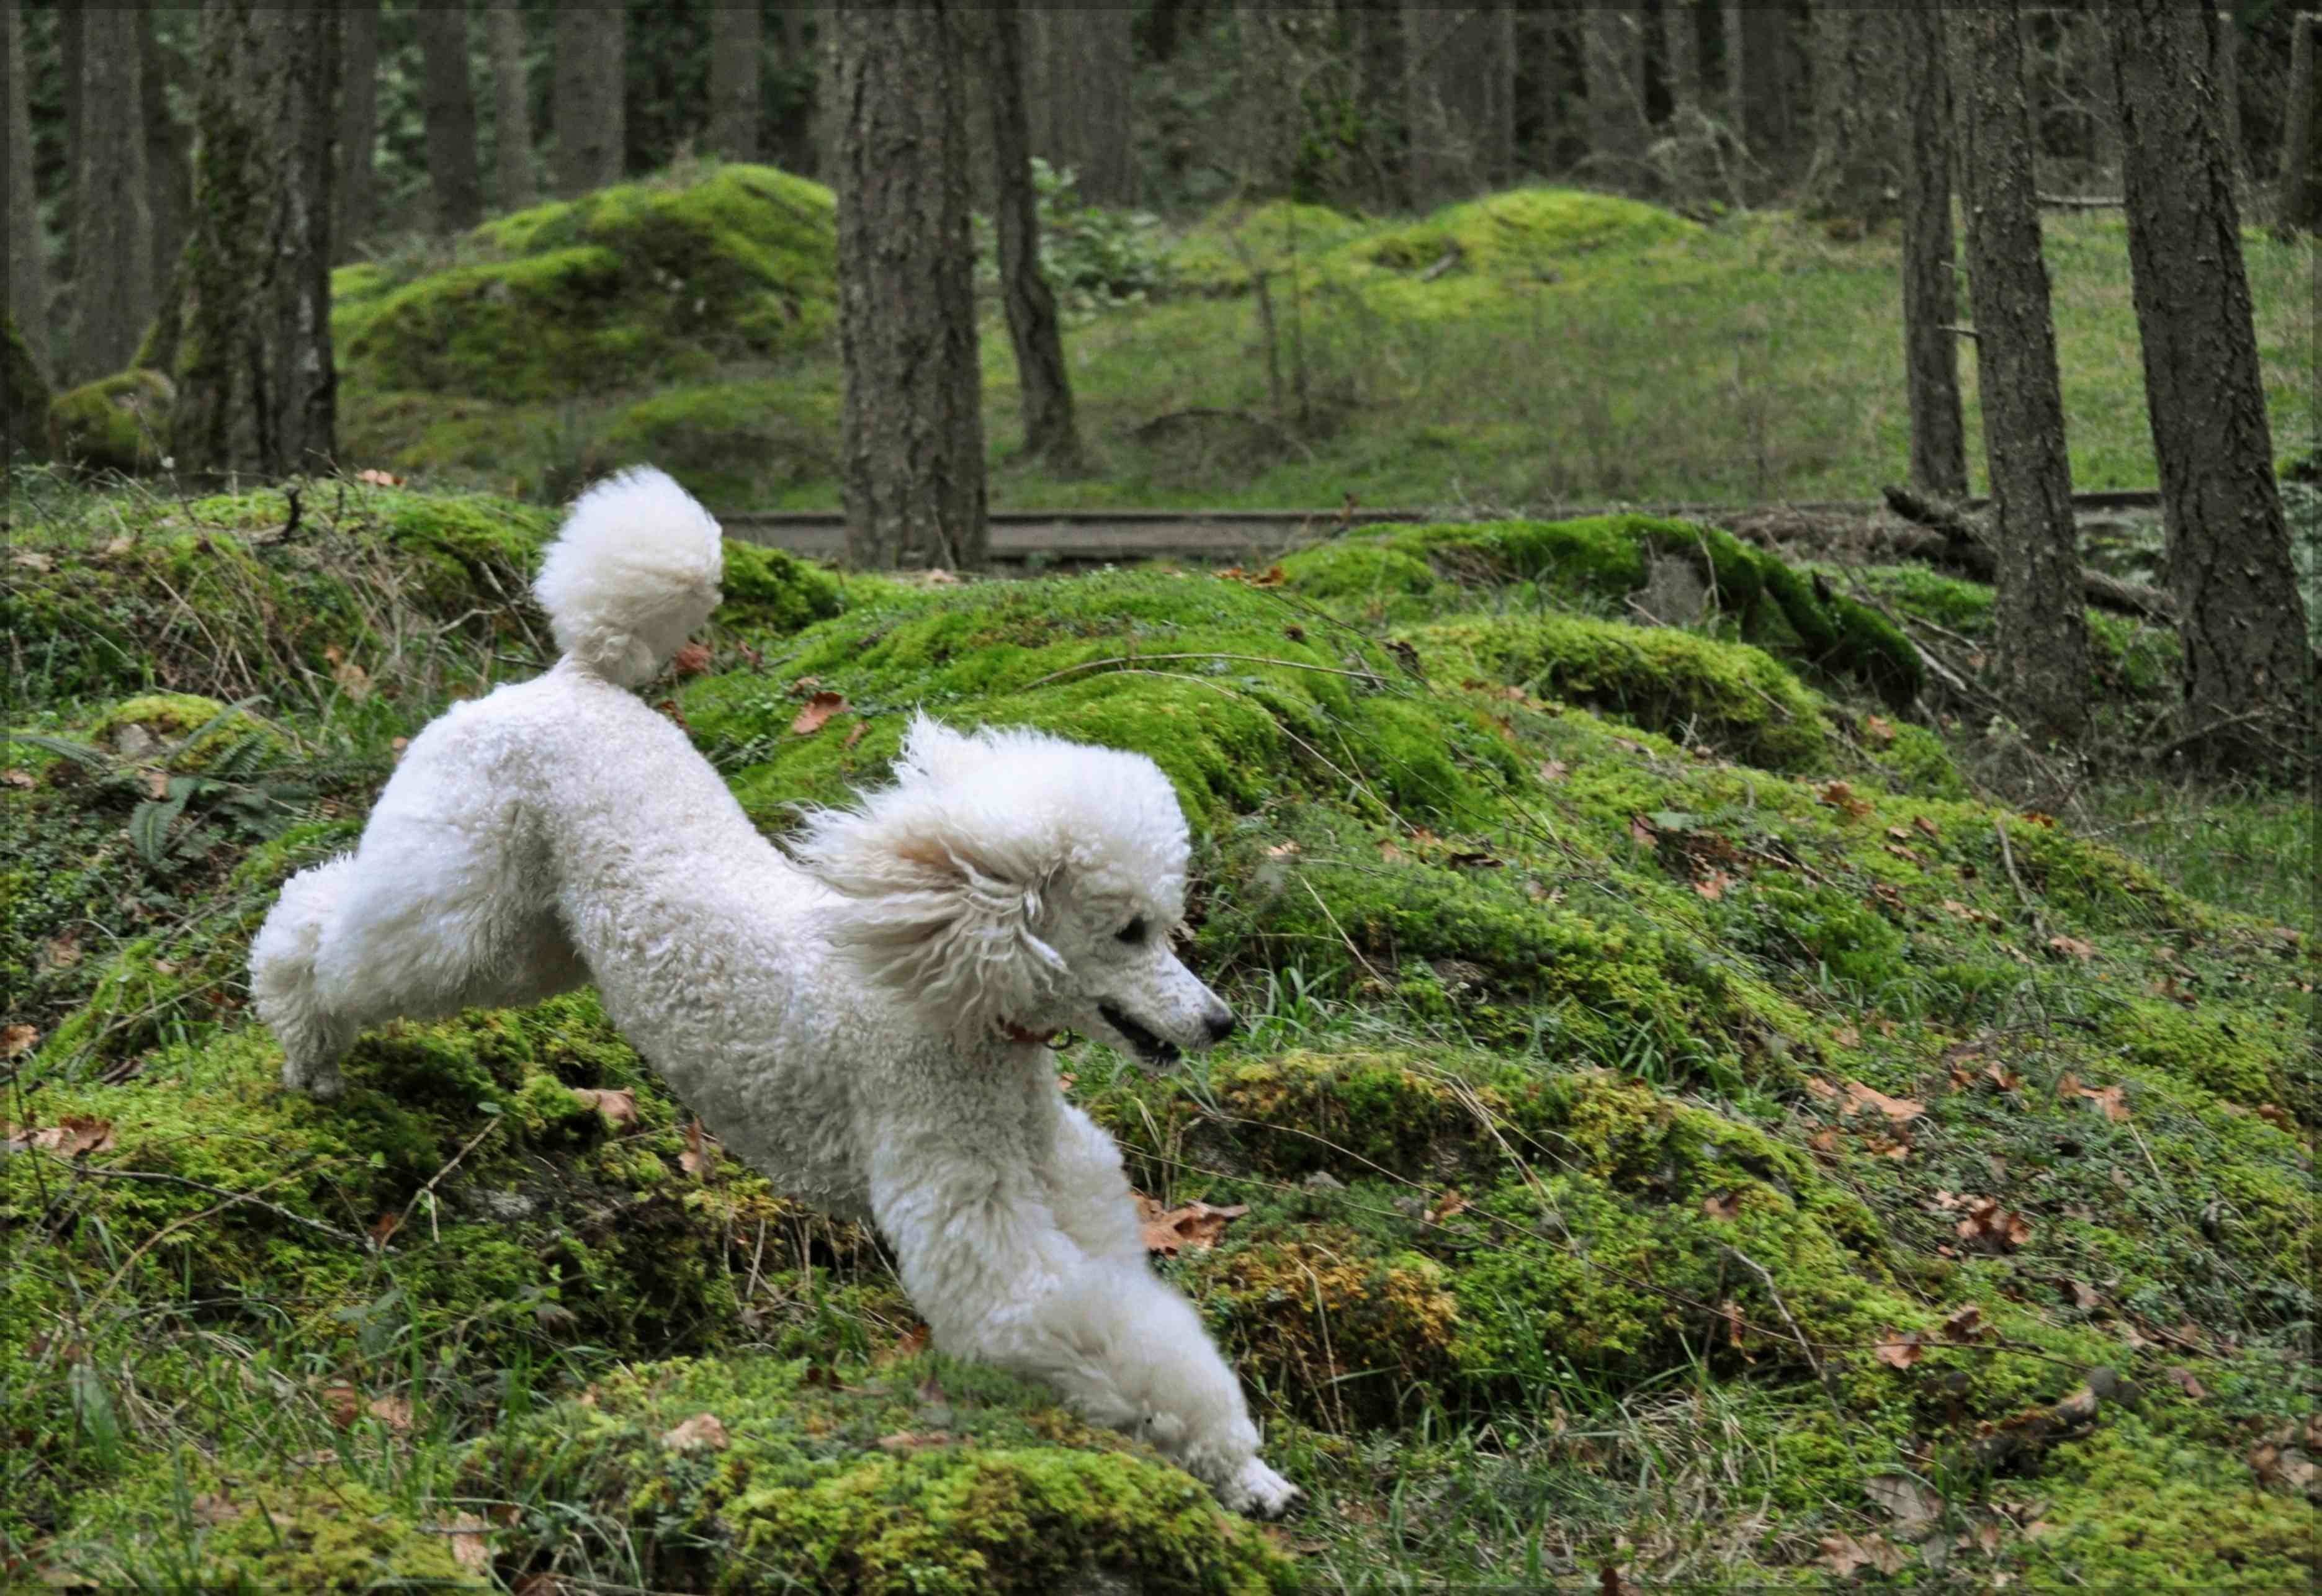 A poodle running in a mossy forest.